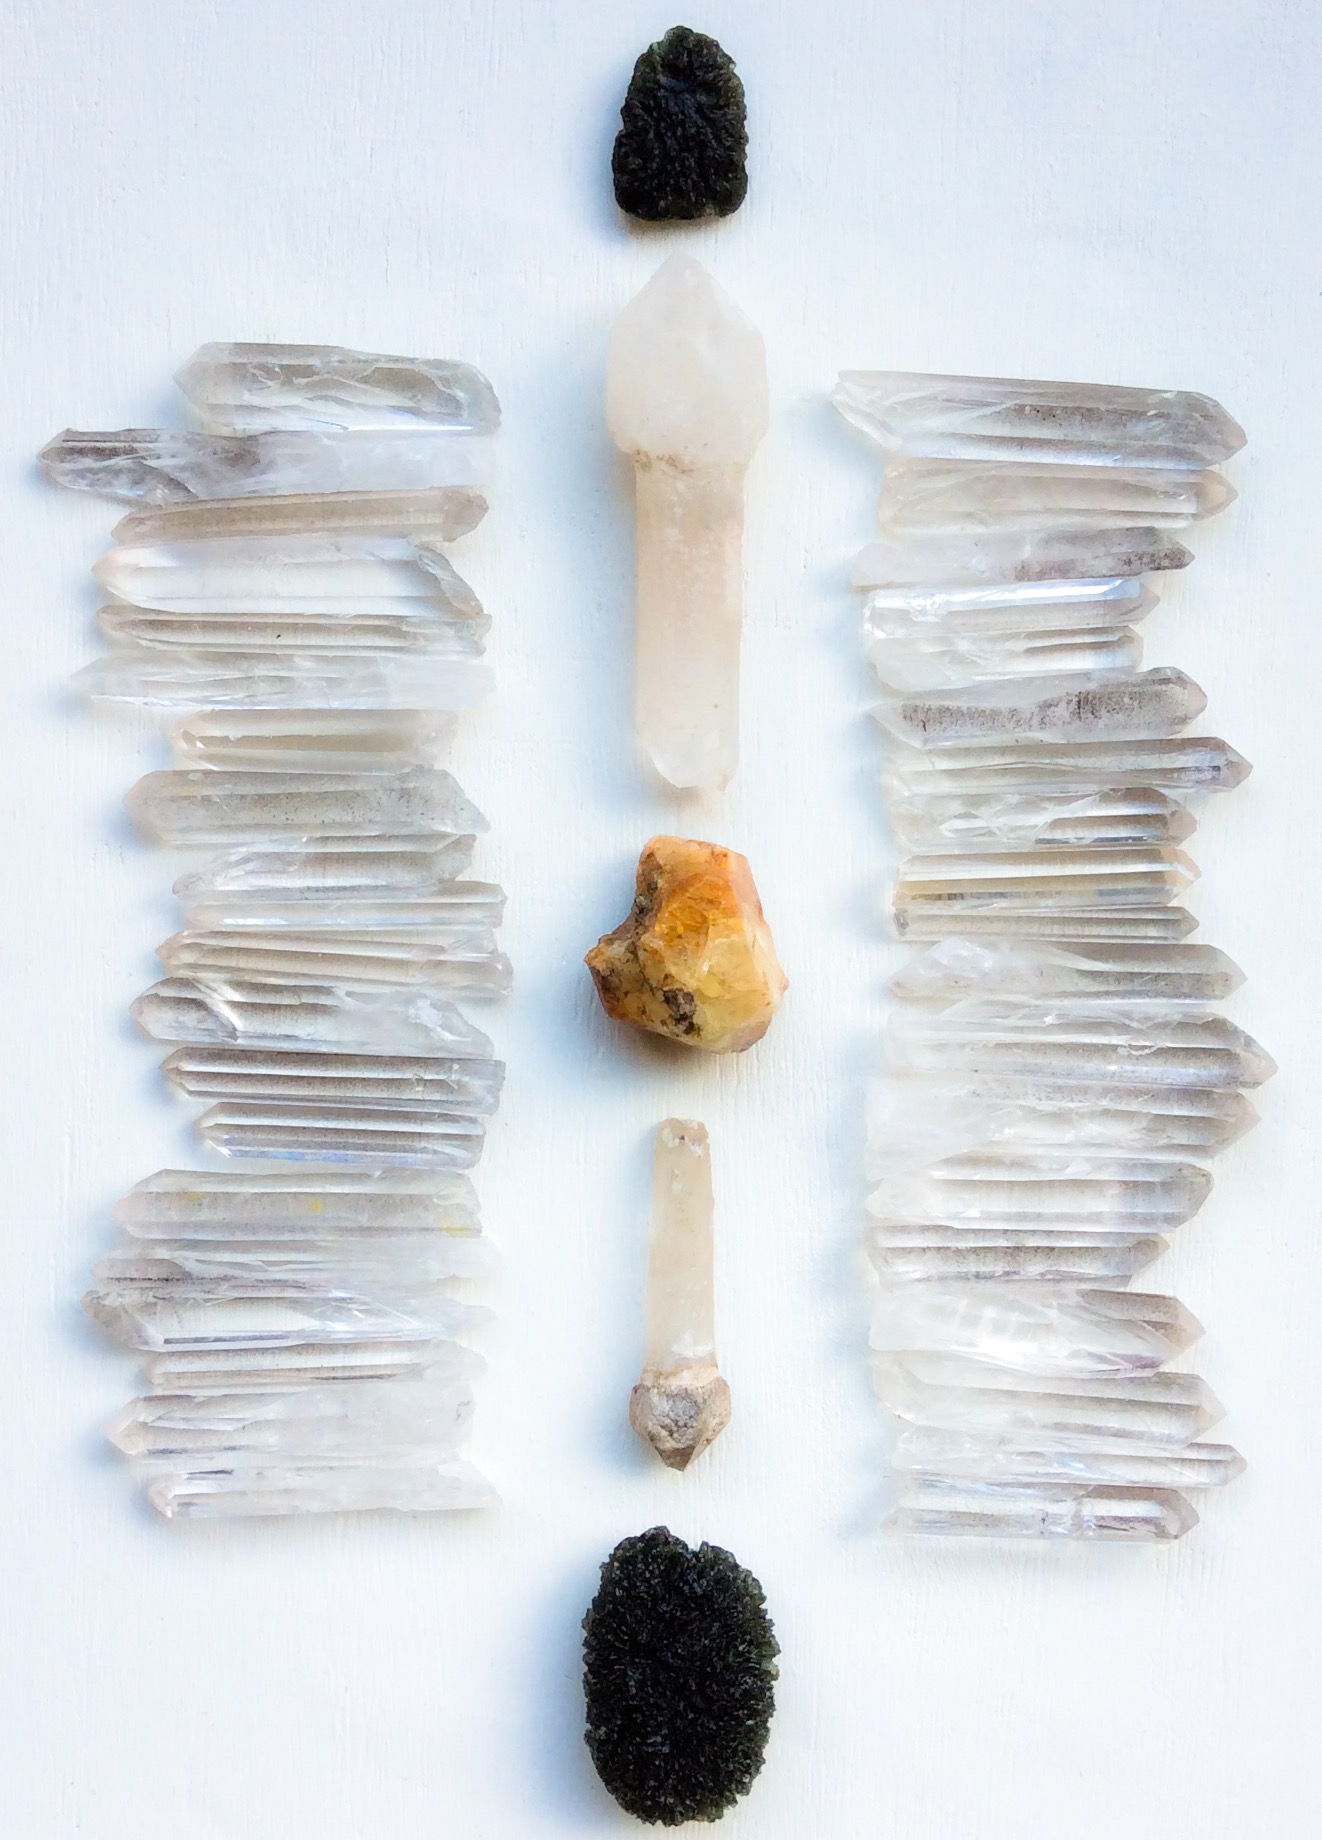 Phenacite, Scepter Quartz, Moldavite and Lemurian Quartz